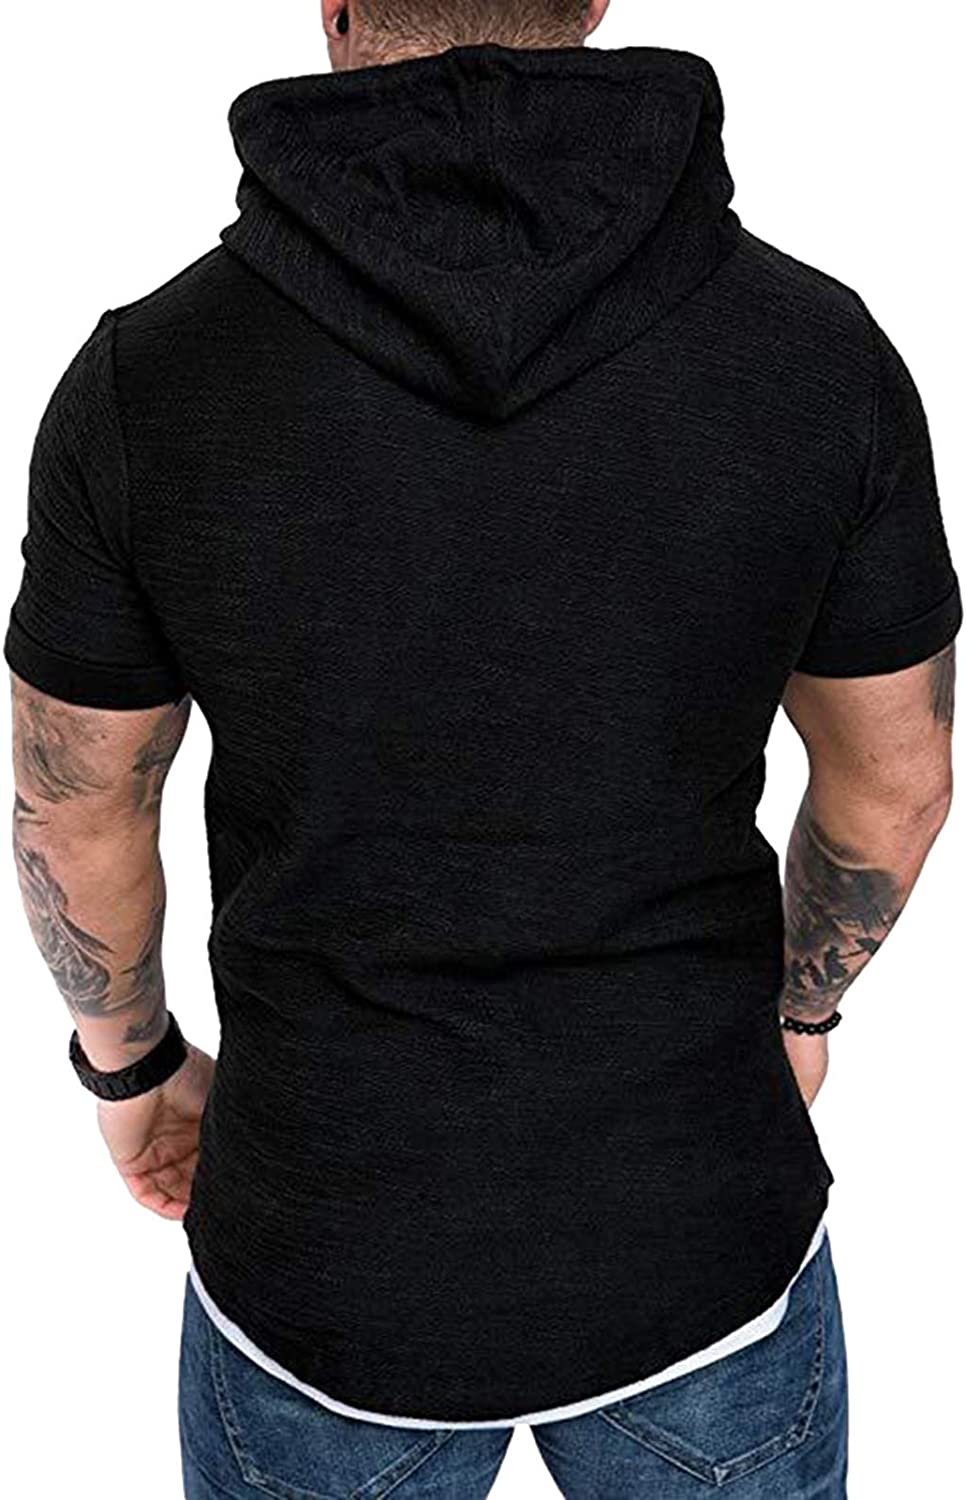 Athletic Fashion T-Shirts for Men Short Sleeve Tops Slim Fit Cotton Gym Tee